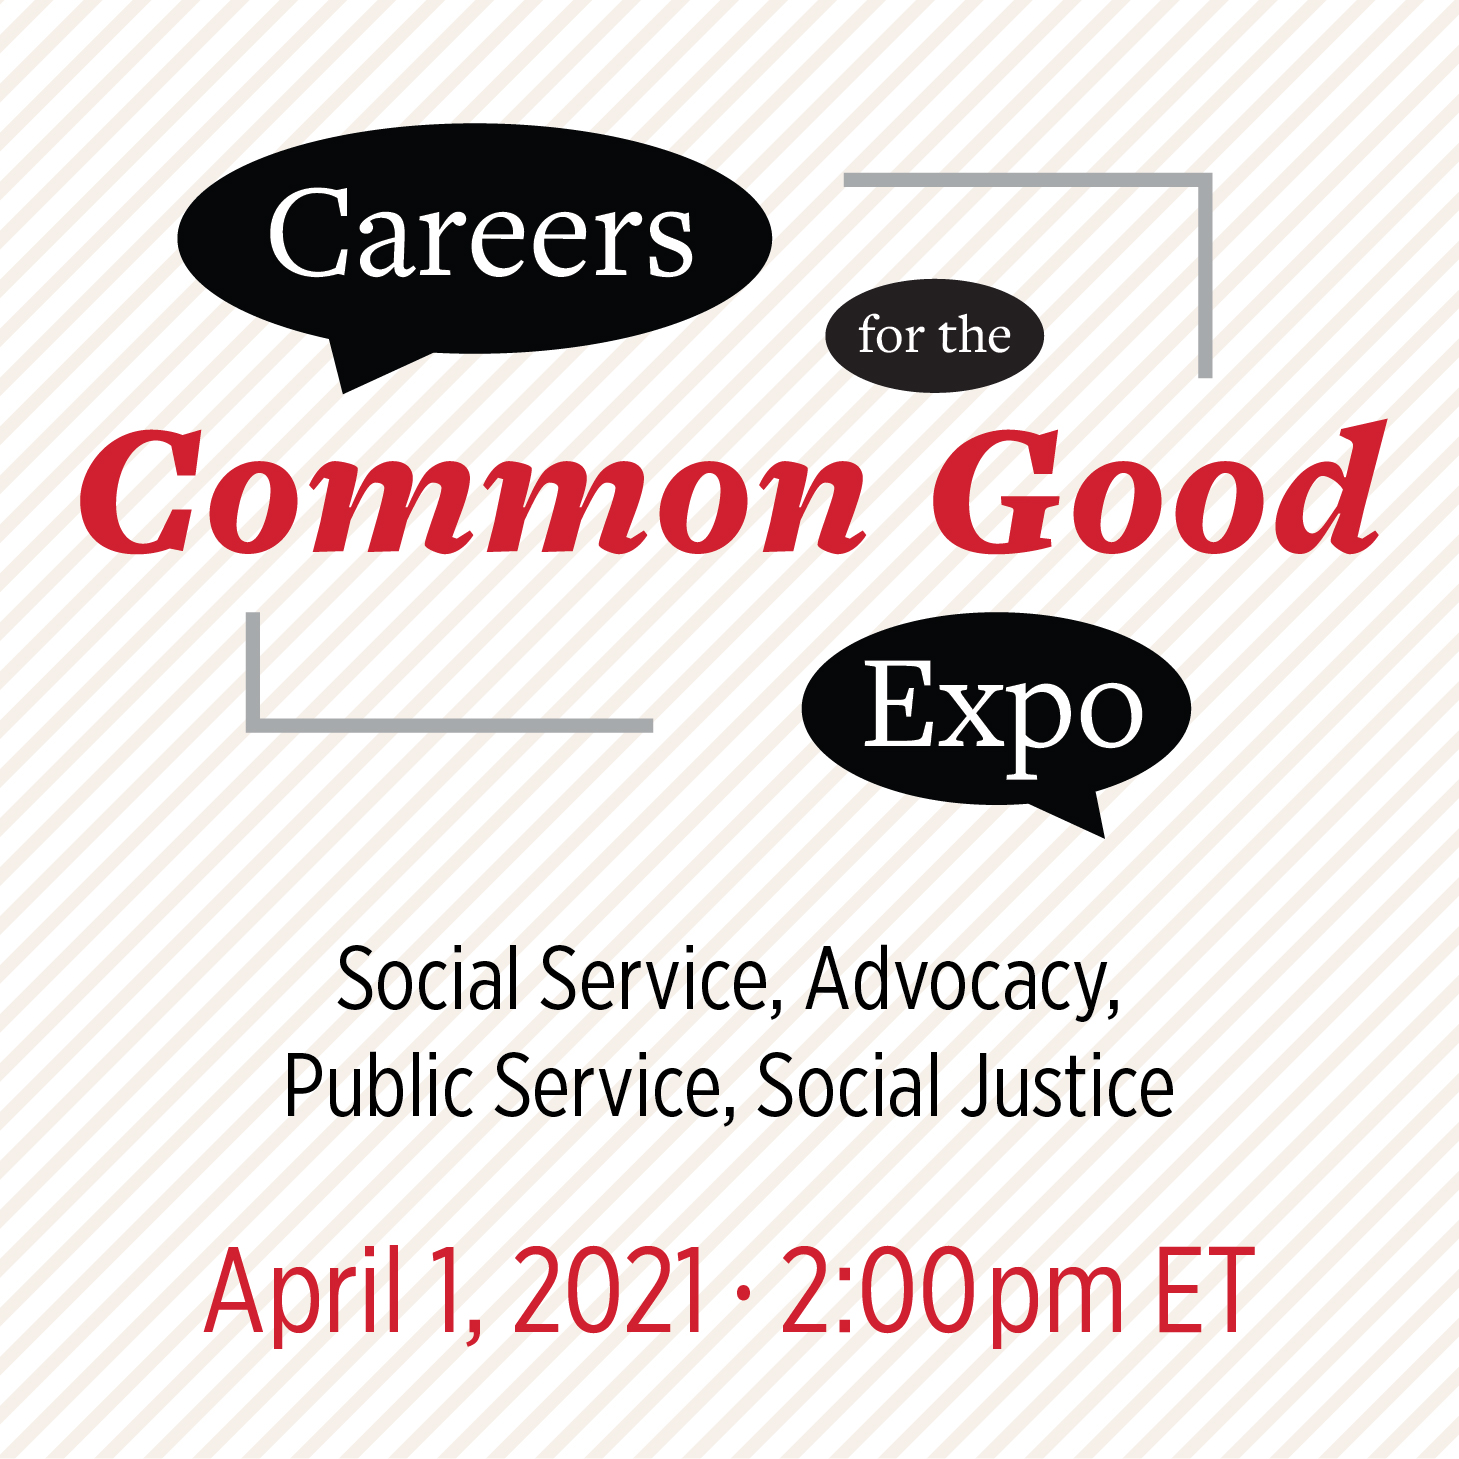 Careers for the Common Good Expo. Social Service, Advocacy, Public Service, Social Justice. April 1, 2021 at 2pm ET